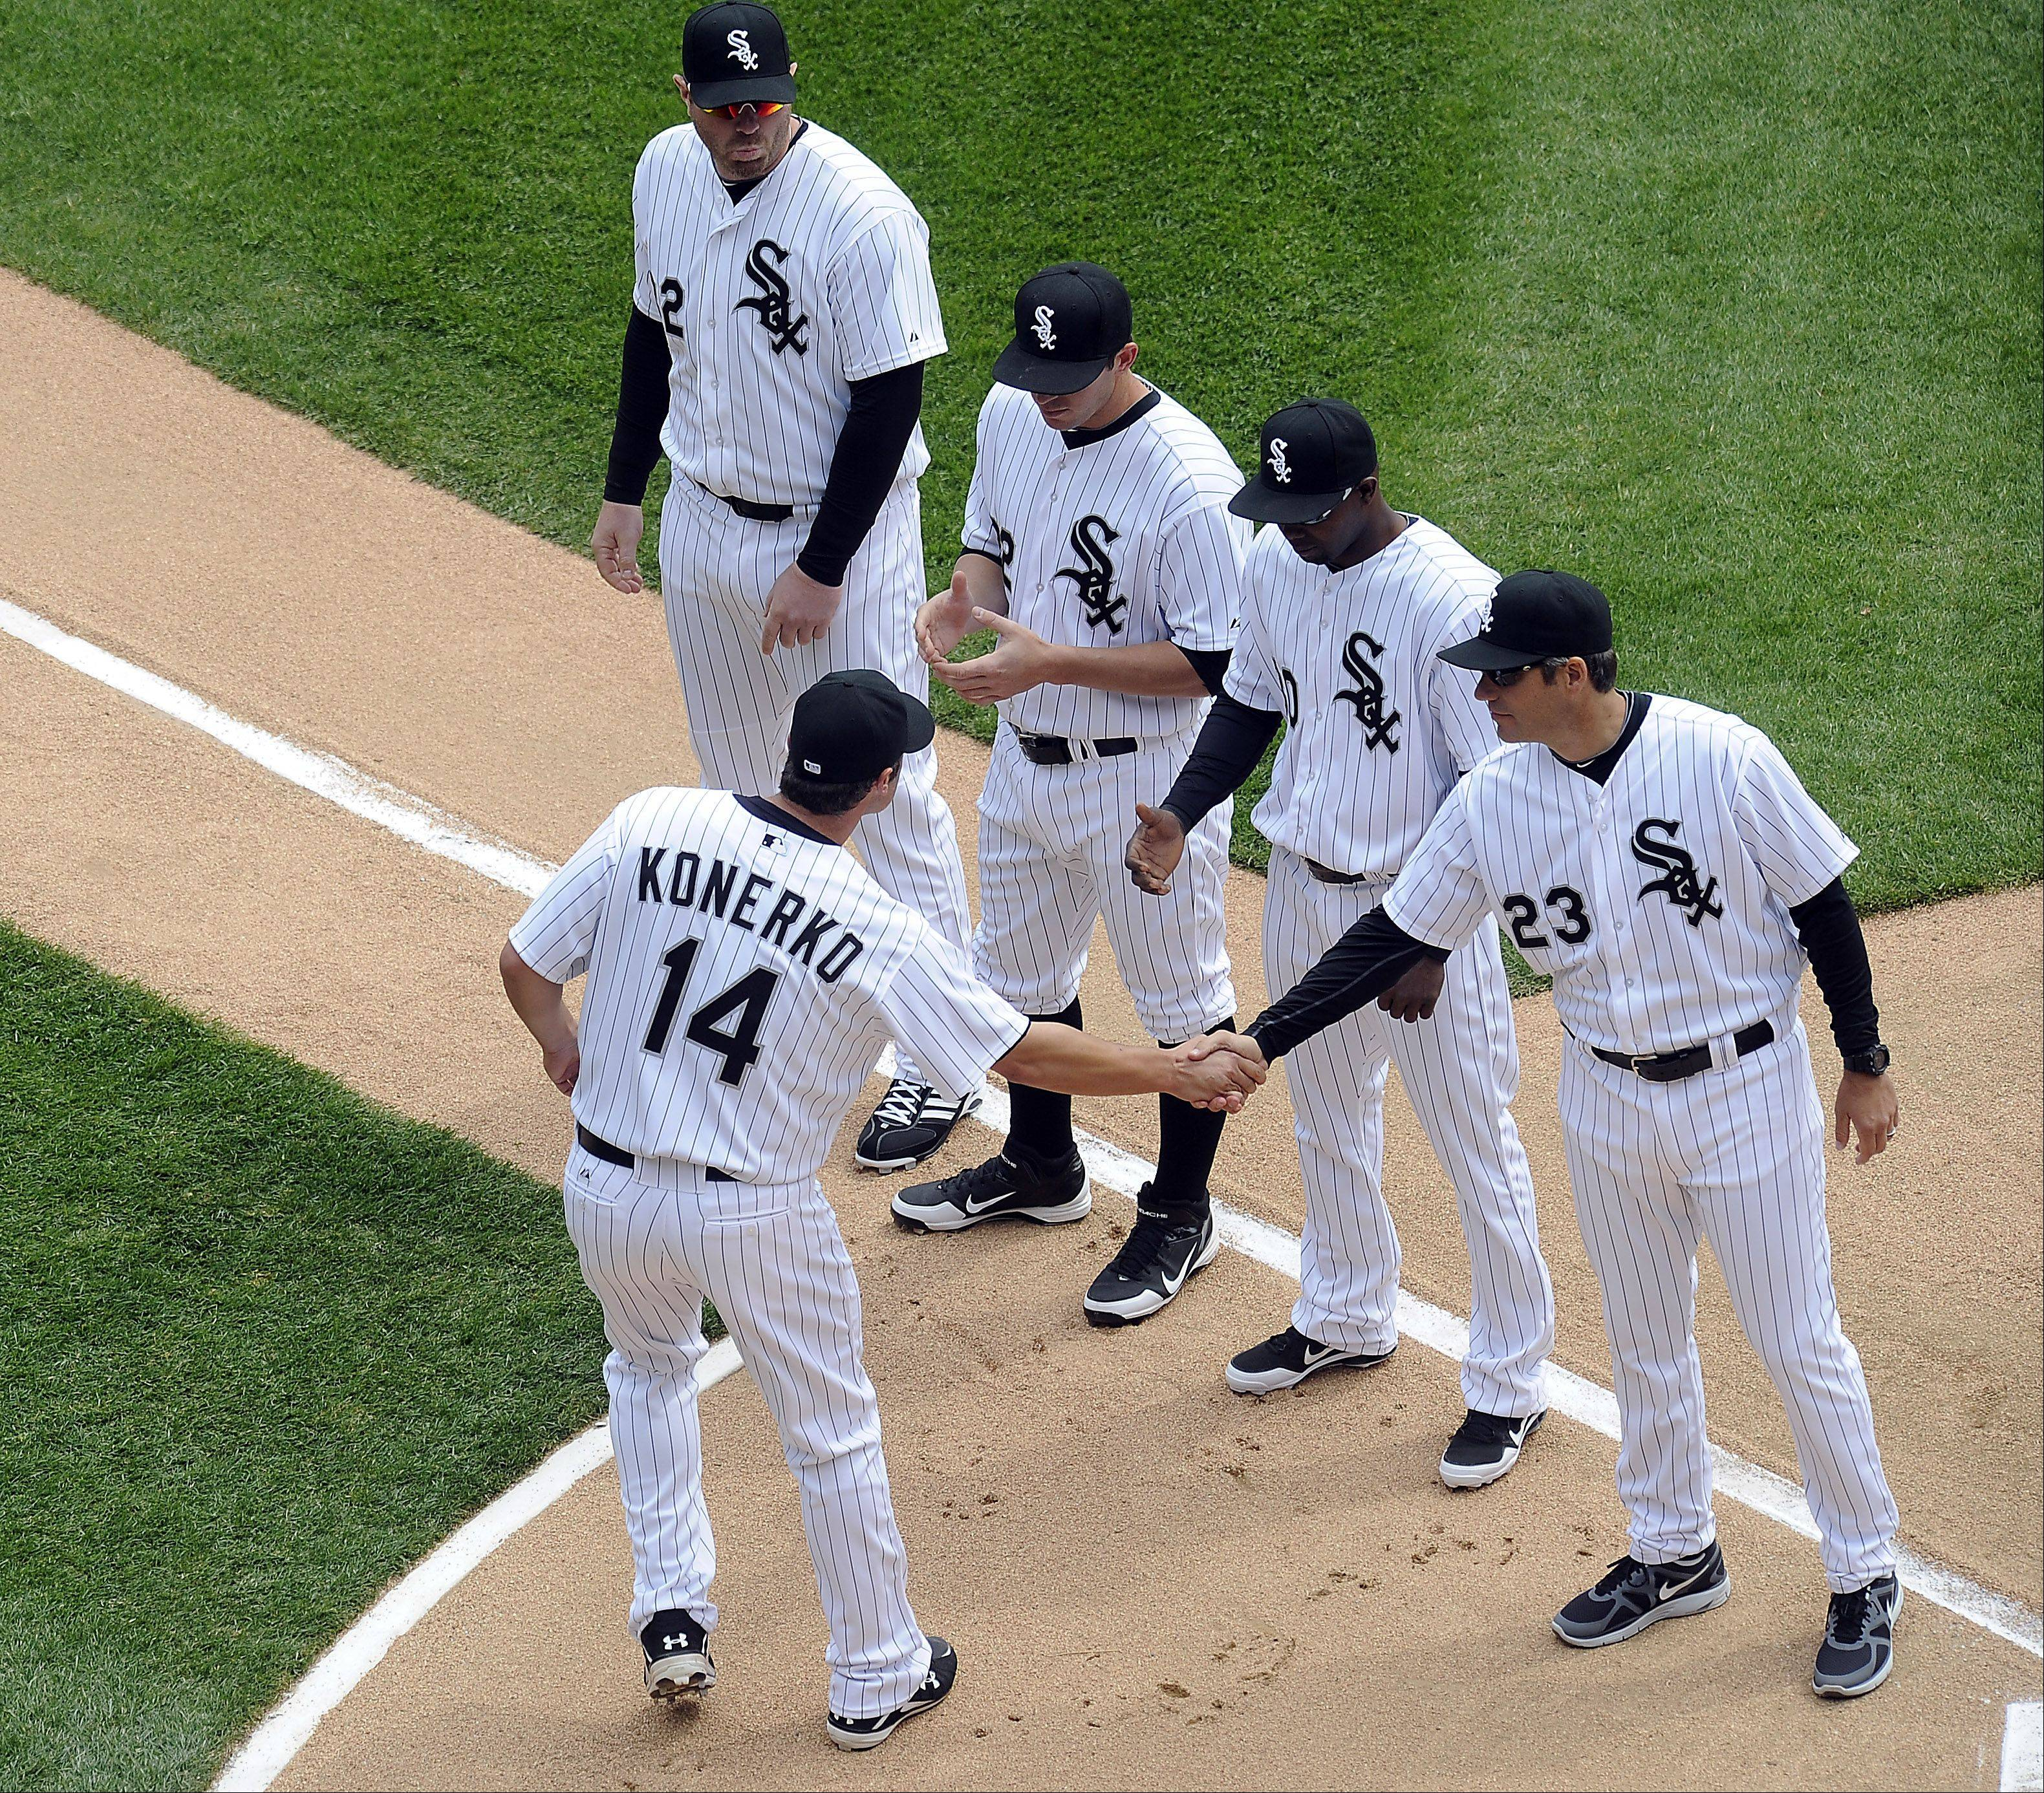 White Sox player Paul Konerko greets his teammates as the starting lineup is announced.